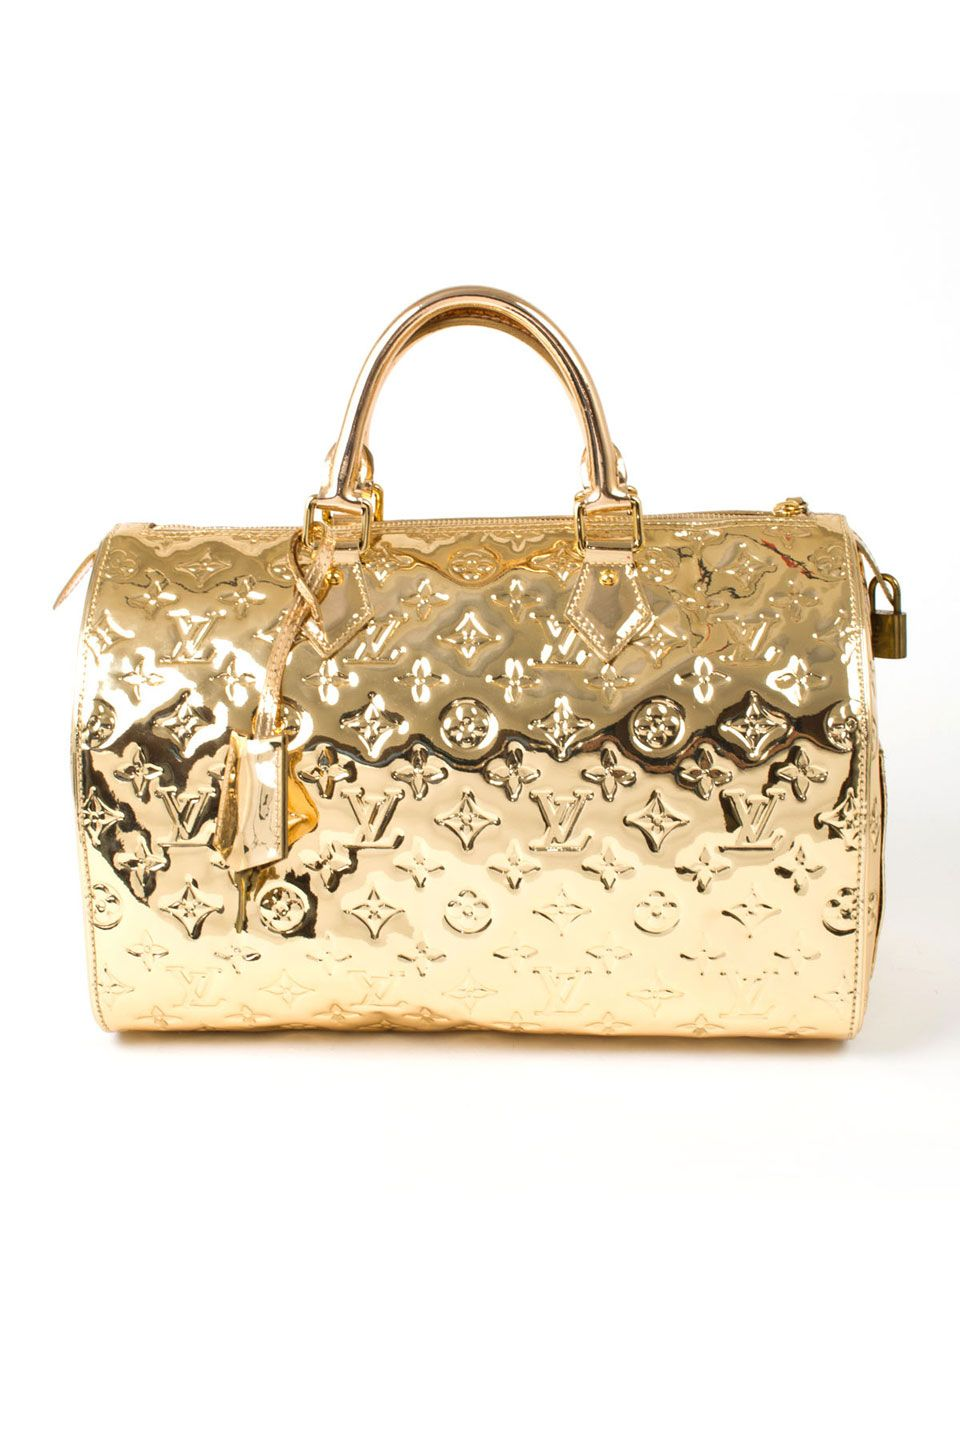 Lv limited edition miroir speedy 30 in gold tone louis for Miroir louis vuitton